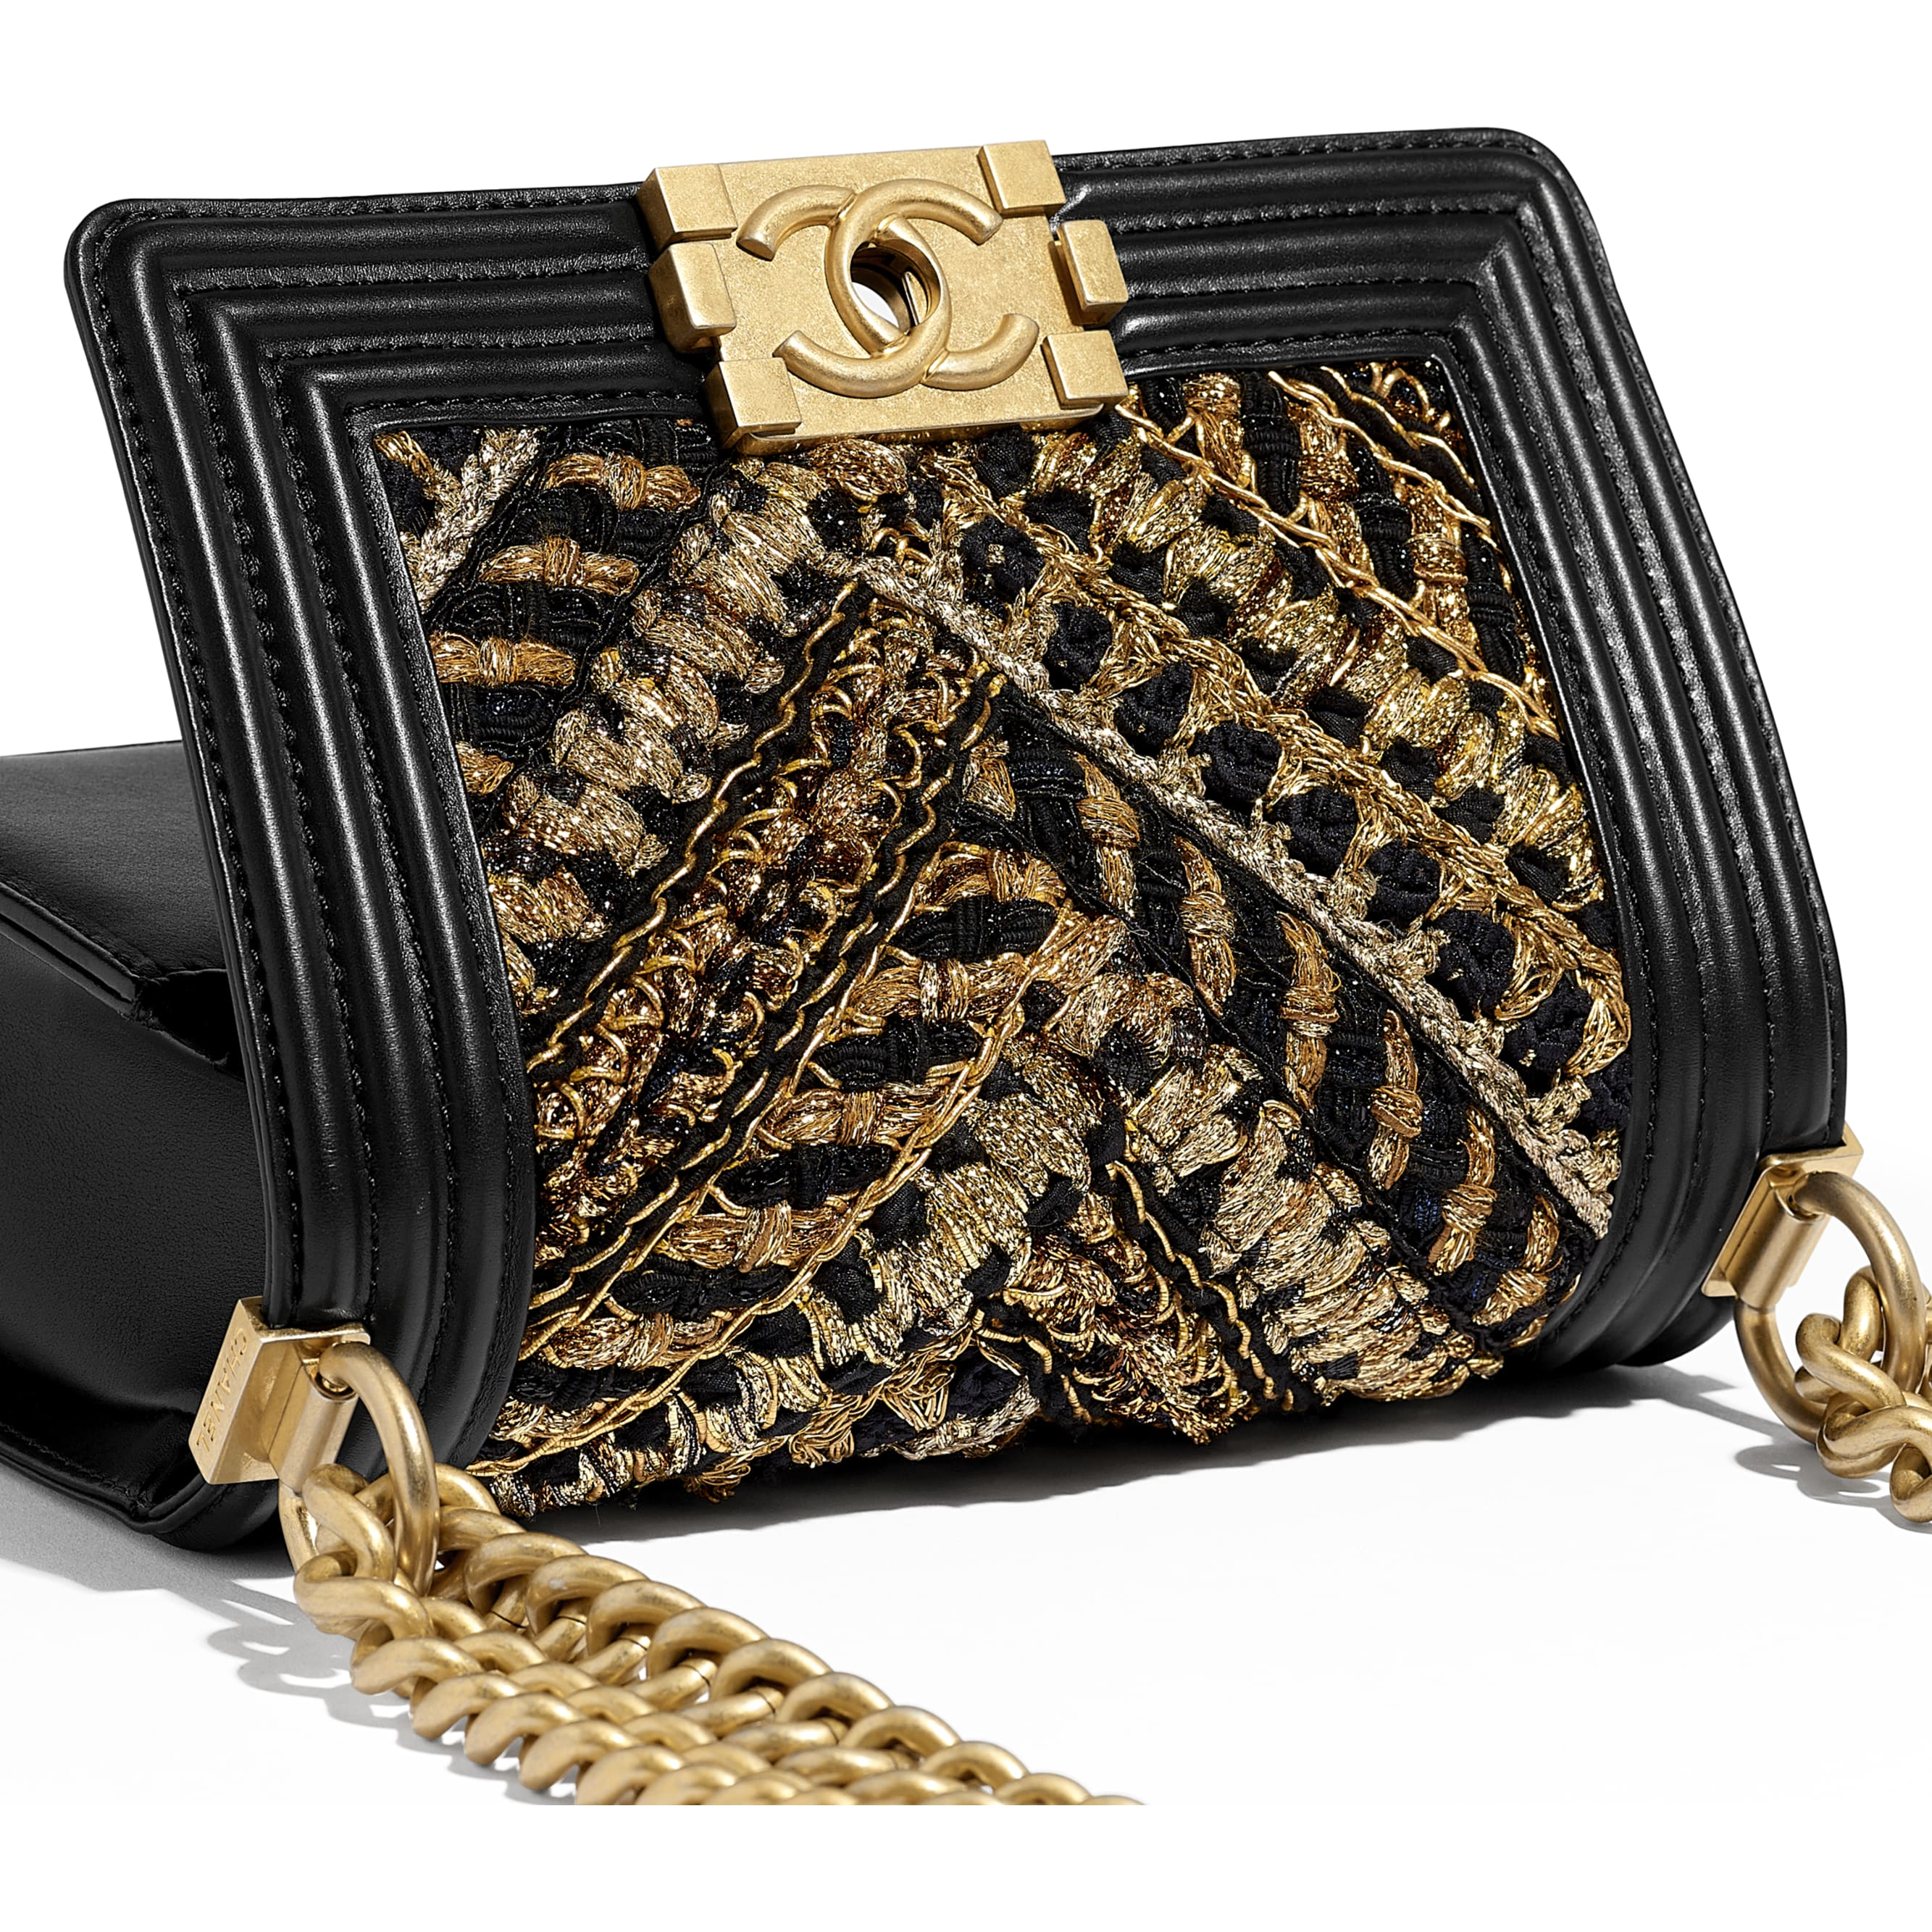 Small BOY CHANEL Handbag - Black & Gold - Calfskin, Cotton & Gold-Tone Metal - CHANEL - Extra view - see standard sized version